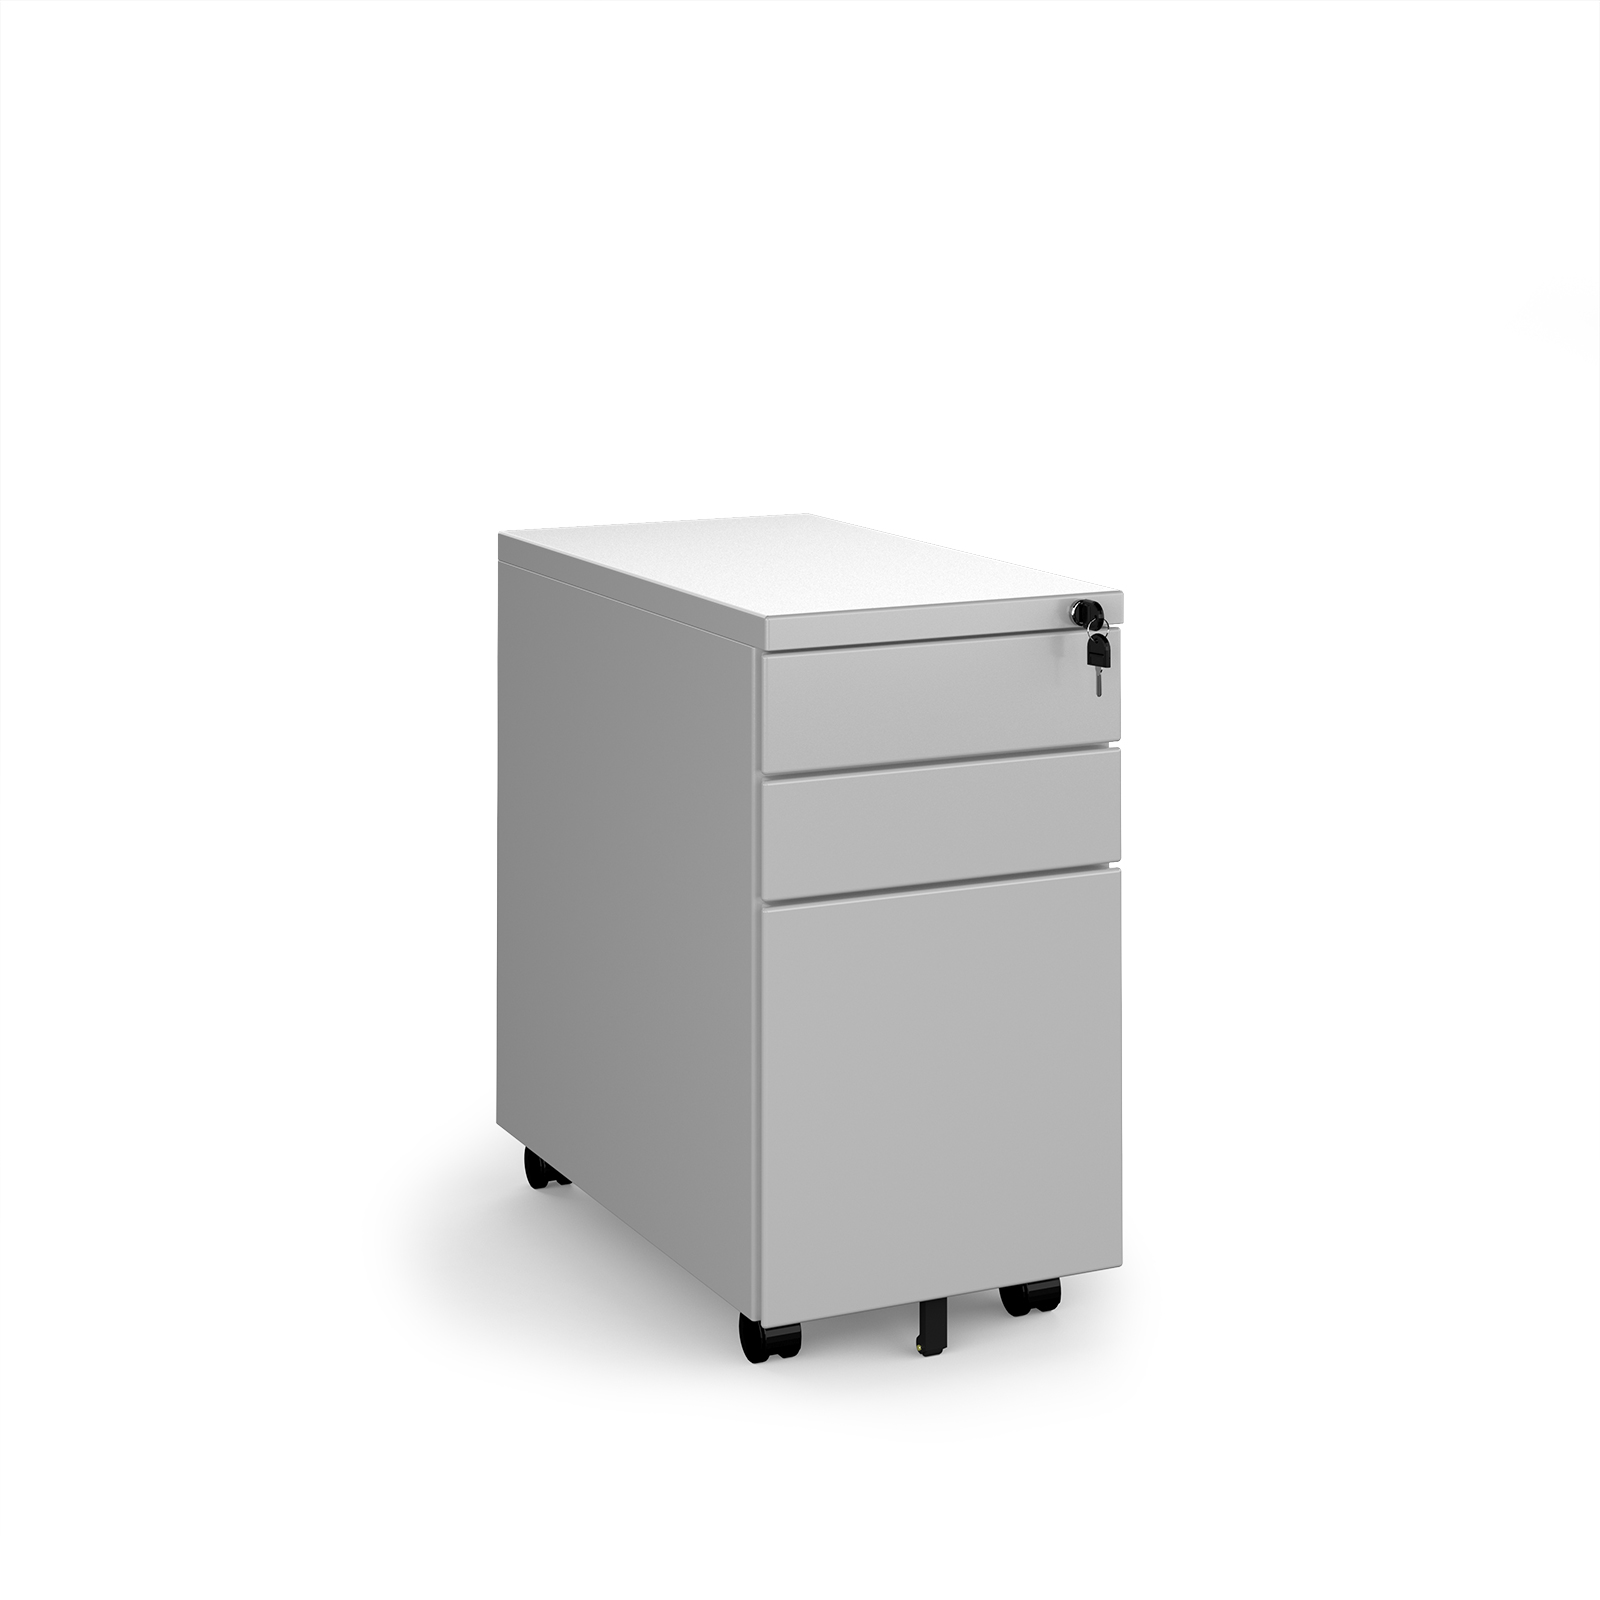 Steel 3 drawer narrow mobile pedestal - silver